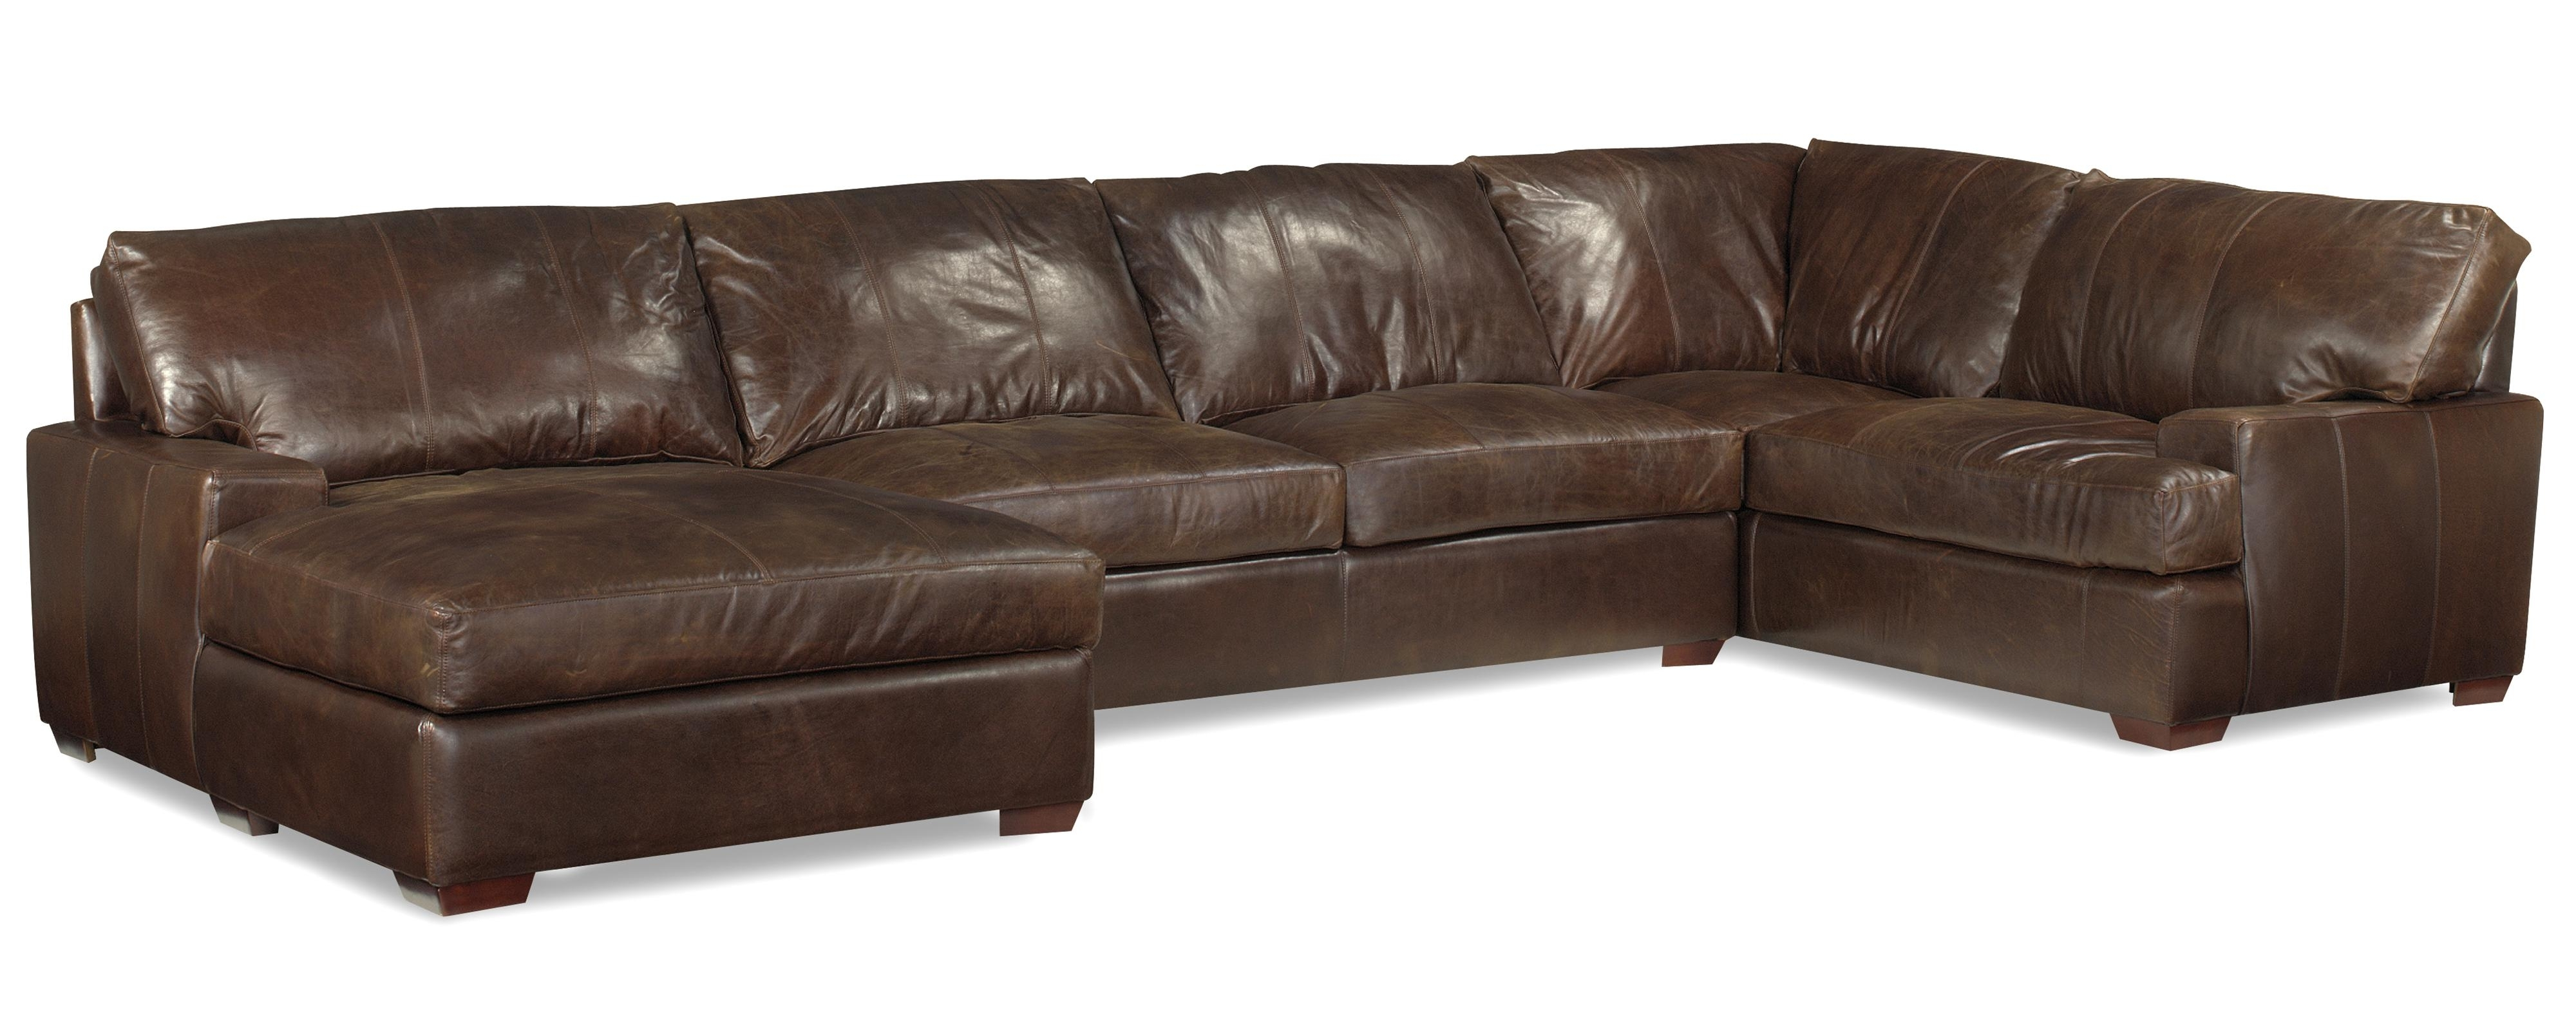 Well Known Usa Premium Leather 3635 Track Arm Sofa Chaise Sectional W/ Block Inside Leather Chaise Sofas (View 9 of 15)